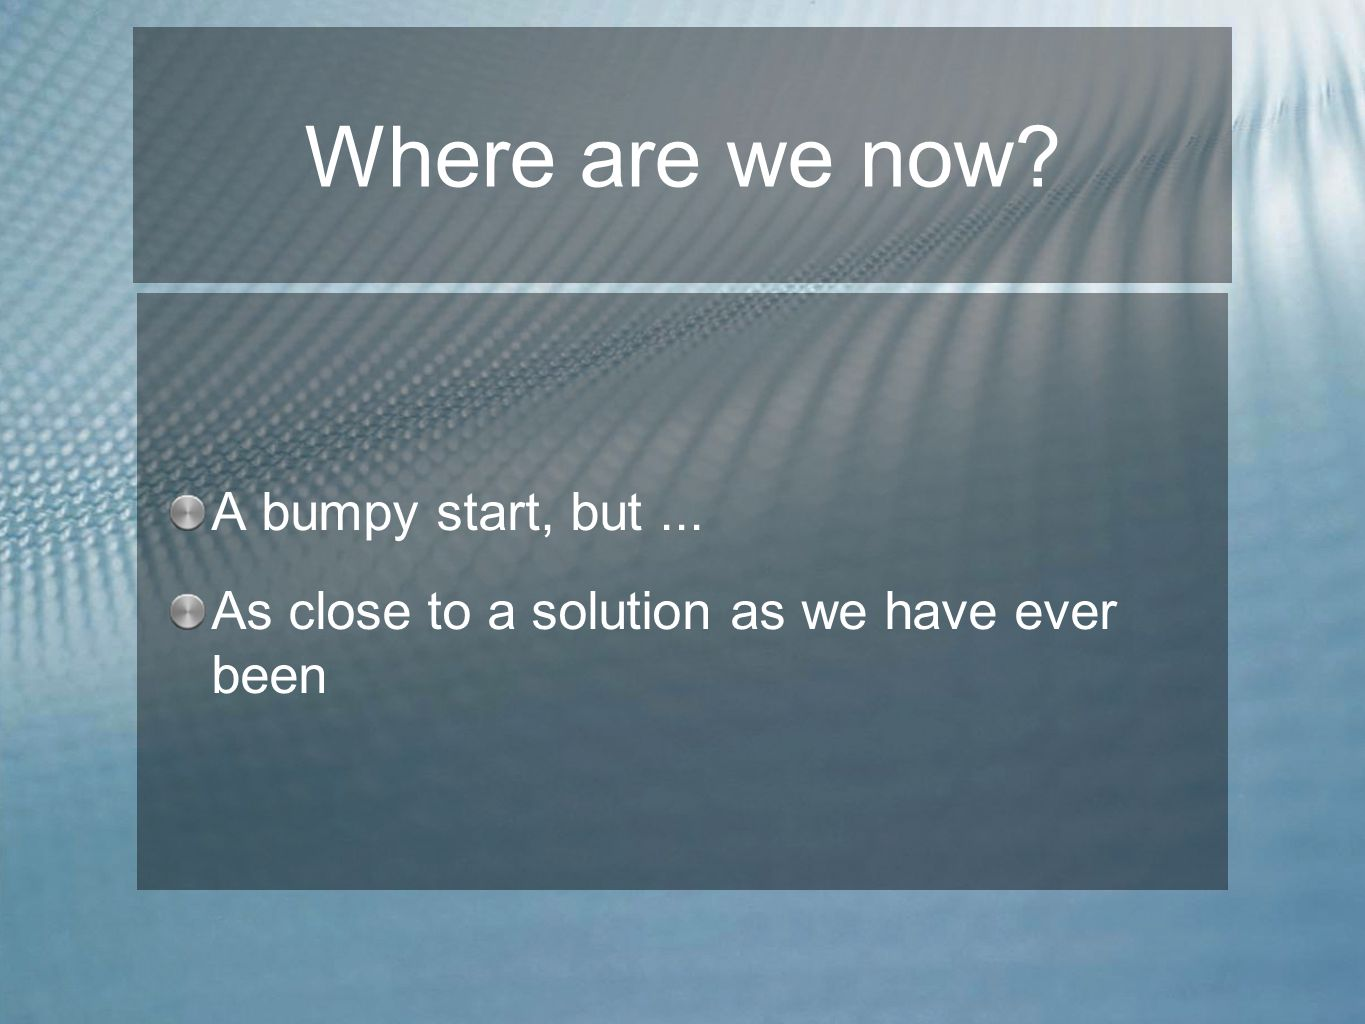 Where are we now? A bumpy start, but... As close to a solution as we have ever been